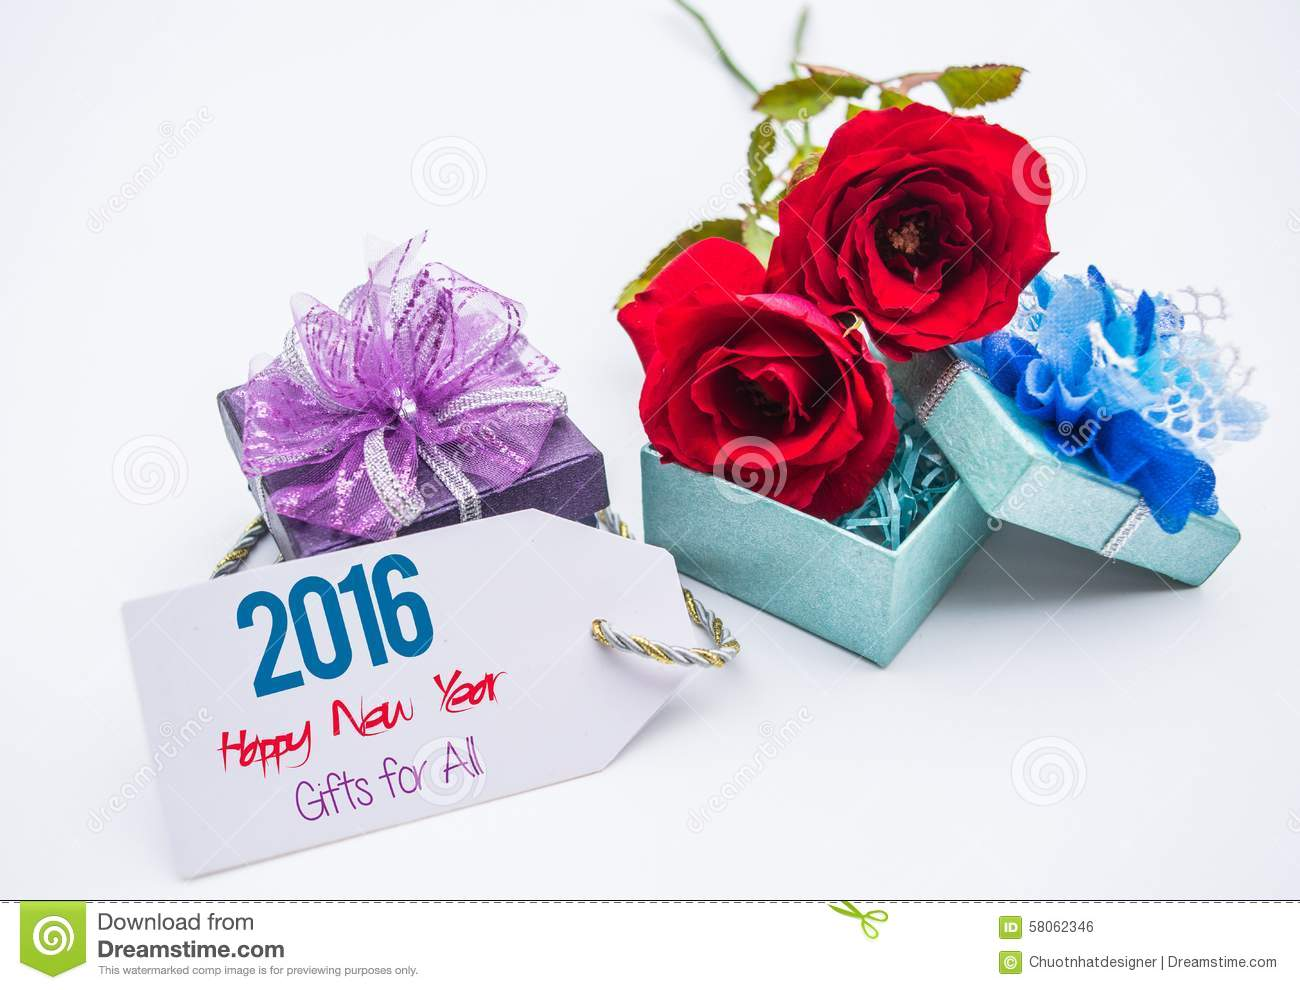 hppy new year 2016 card and roses blank space for love messages